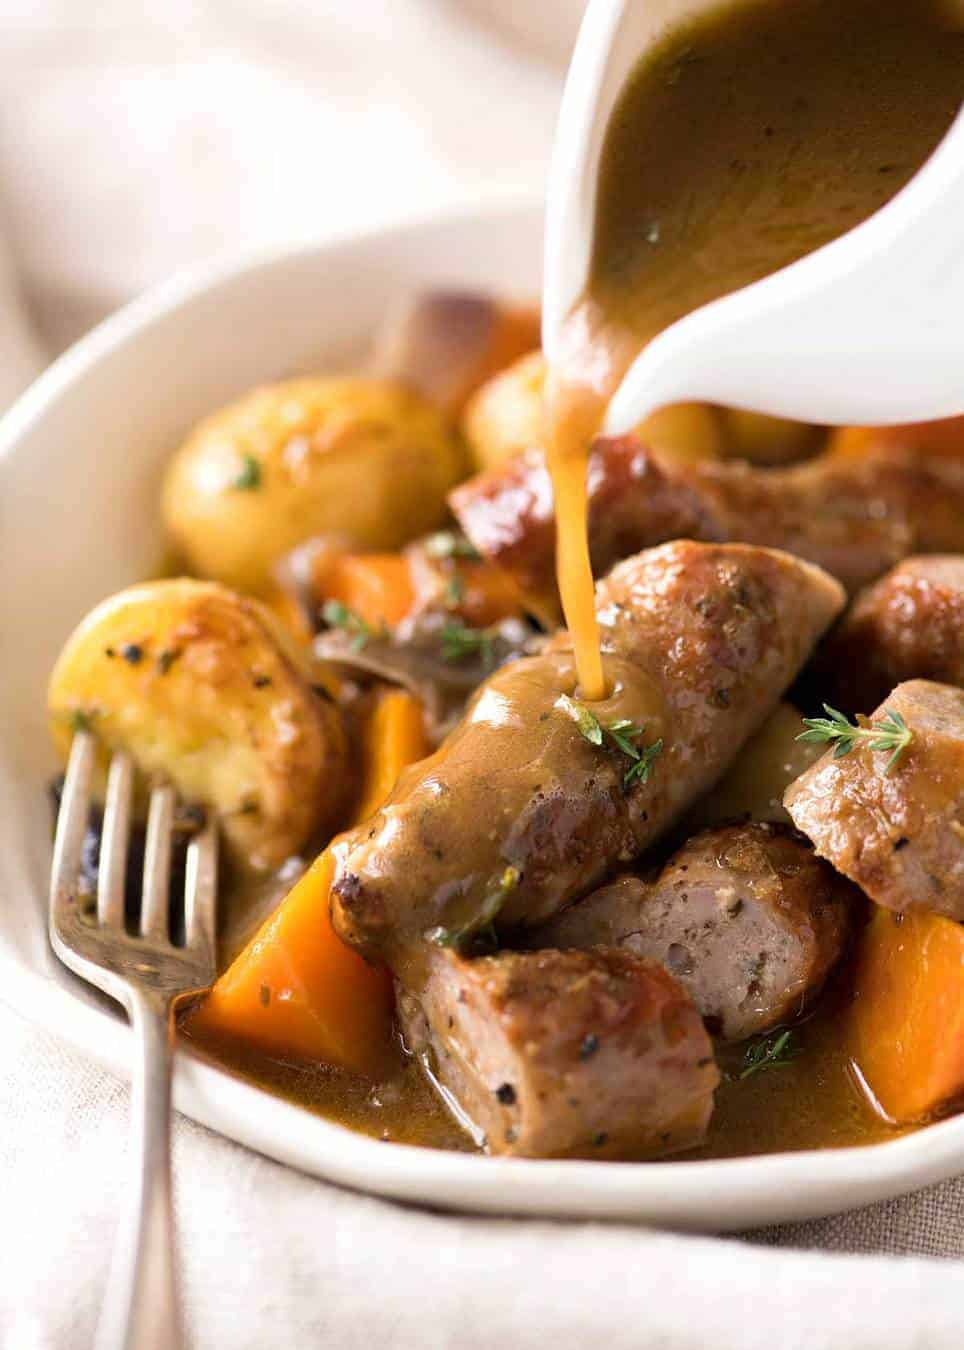 Sausage Bake and Vegetables with Gravy - baked in one pan! recipetineats.com